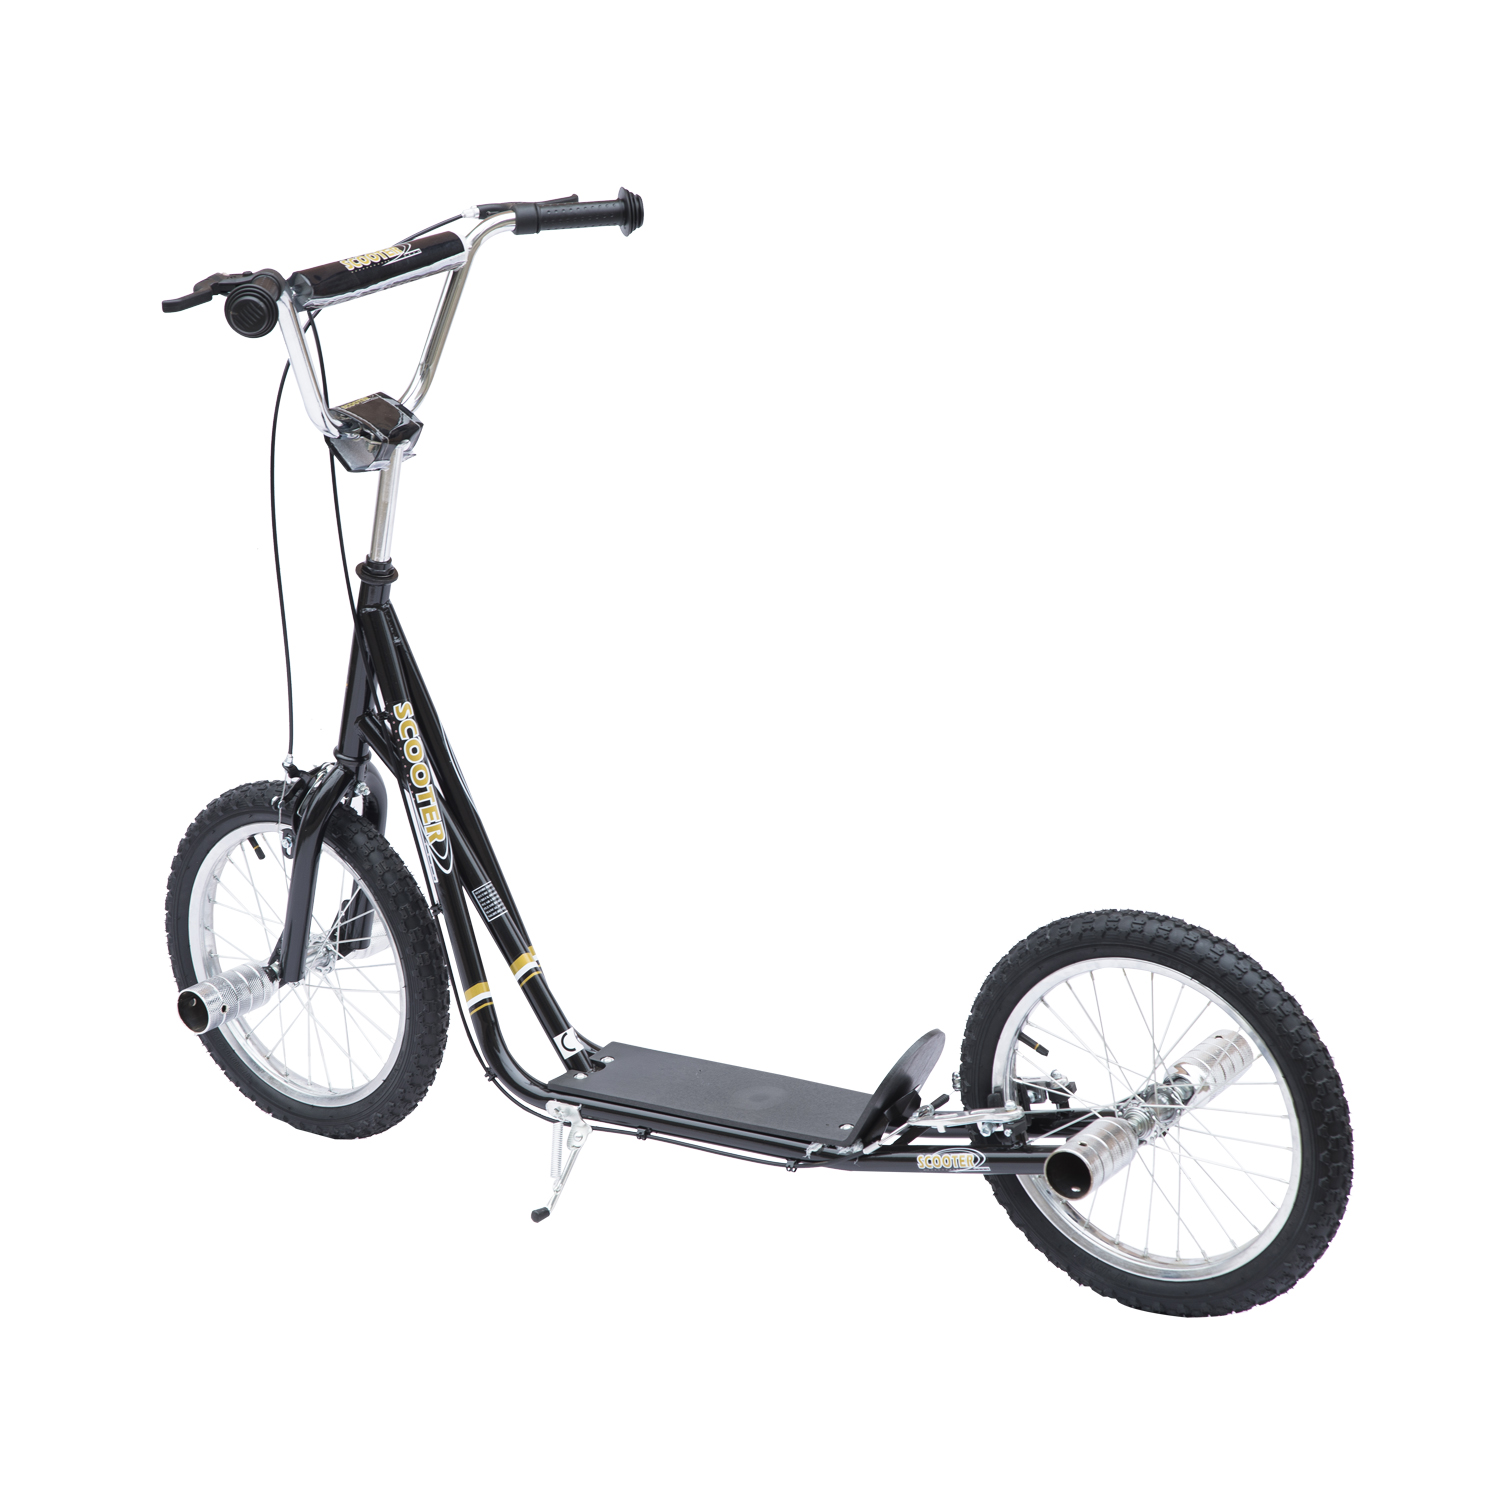 Image of EUR62,99 Patinete Scooter de 2 Ruedas de 16 pulgadas con 2 Frenos PEGS Estribos y Caballete - Negro - Metal - 143 x 58 x 85 cm Black Friday 53-0016 8435428708825